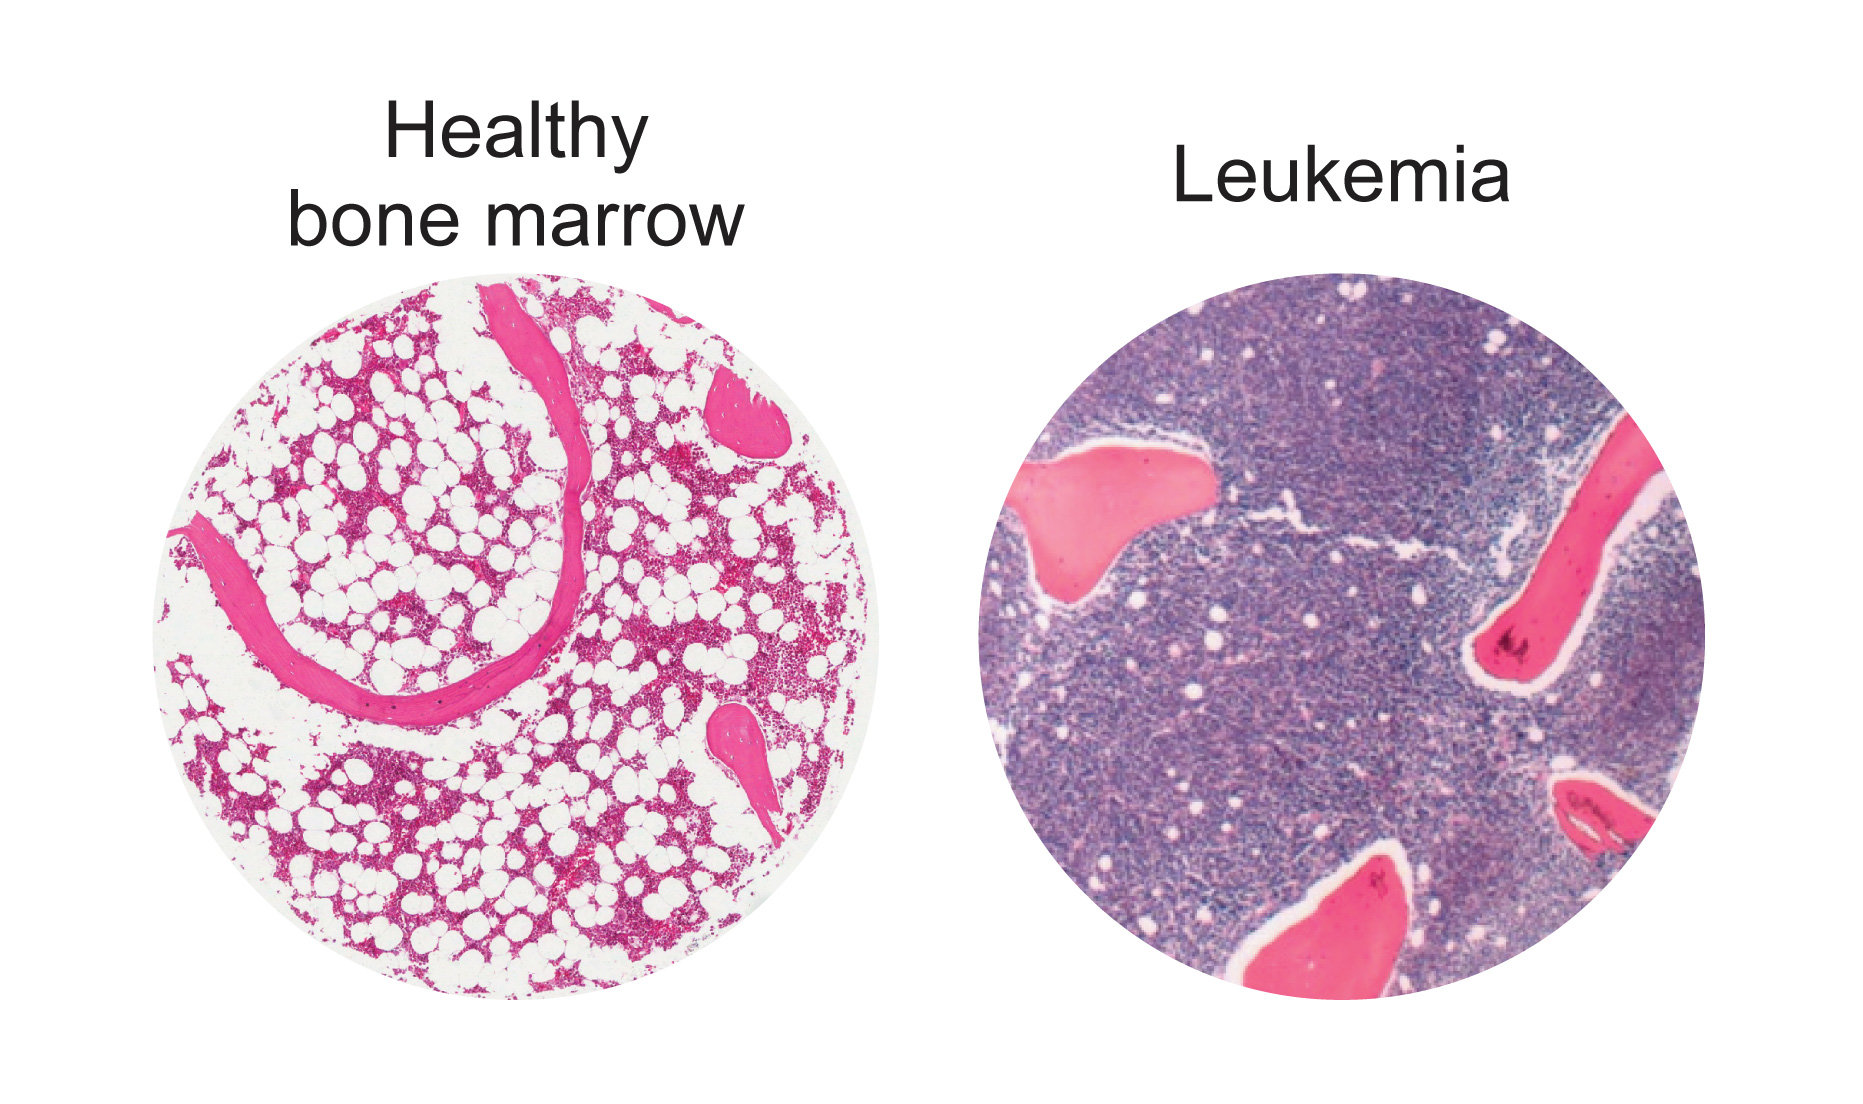 an analysis of the fatal disease leukemia a cancer of the blood Learn about chronic lymphocytic leukemia diagnosis in blood diseases and cancer) is injected into the blood because cancer cells.